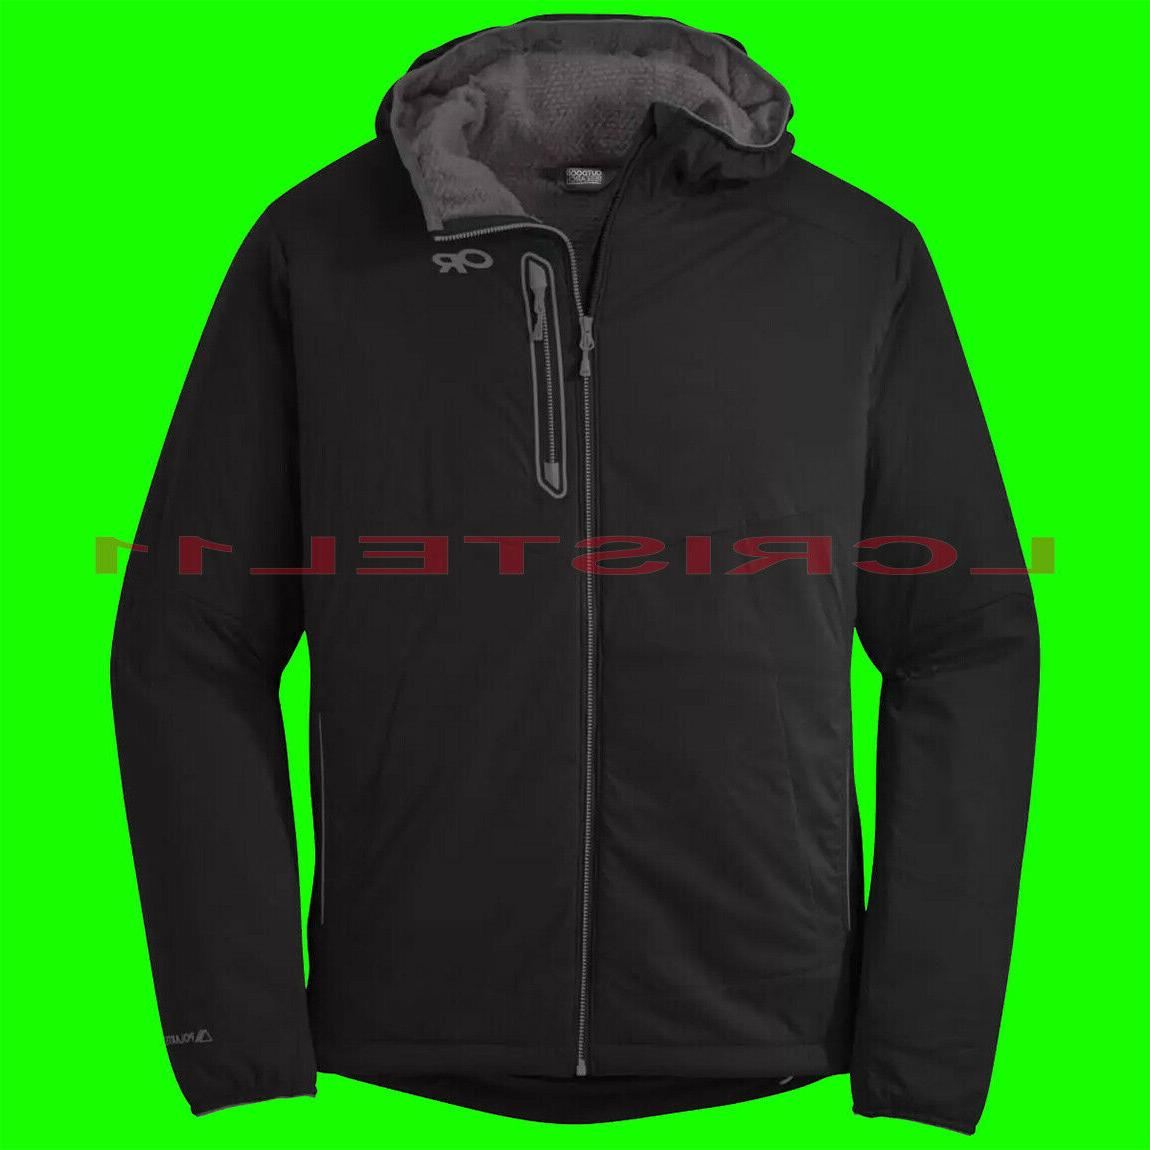 Outdoor Research Ascendant Hooded Jacket - Men's Black/Pewte